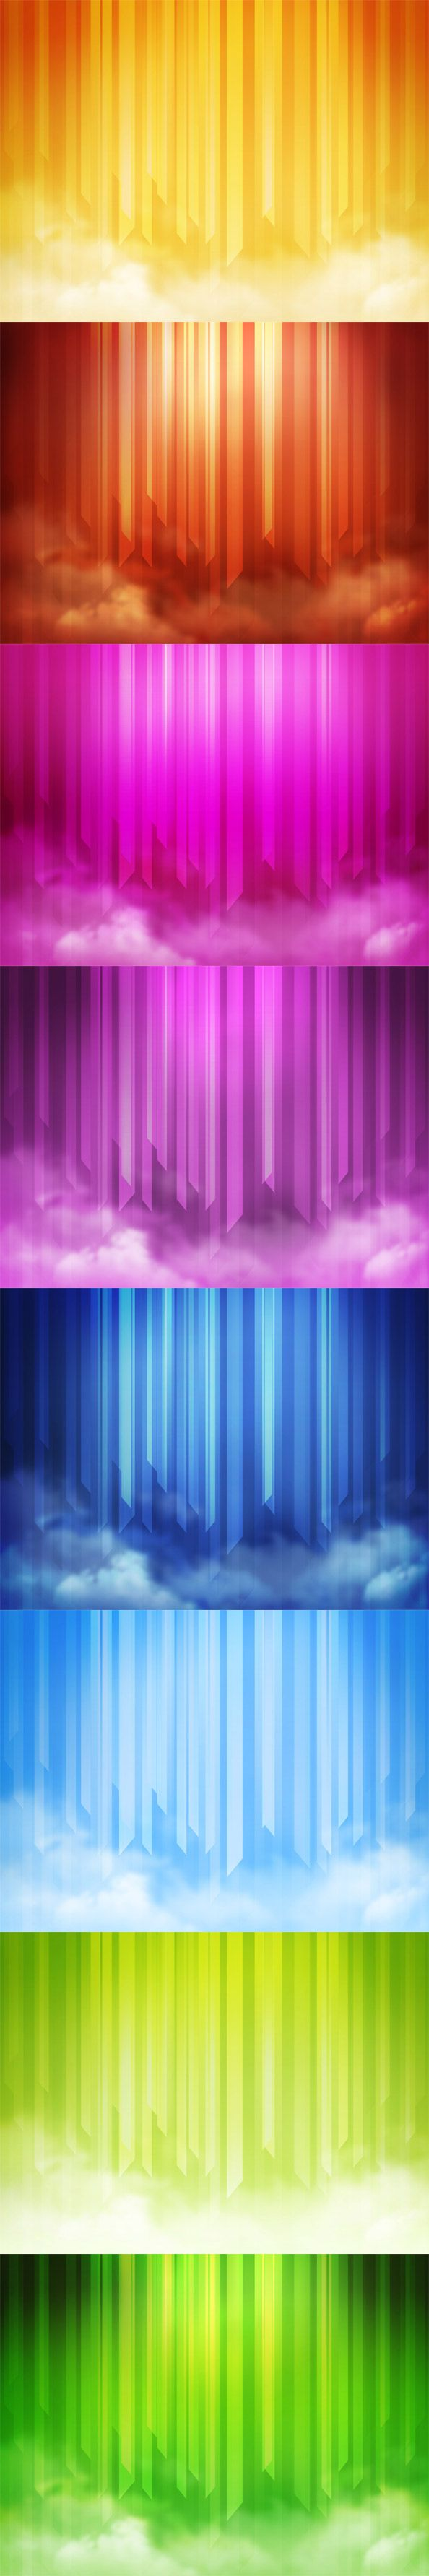 14 best abstract images on pinterest